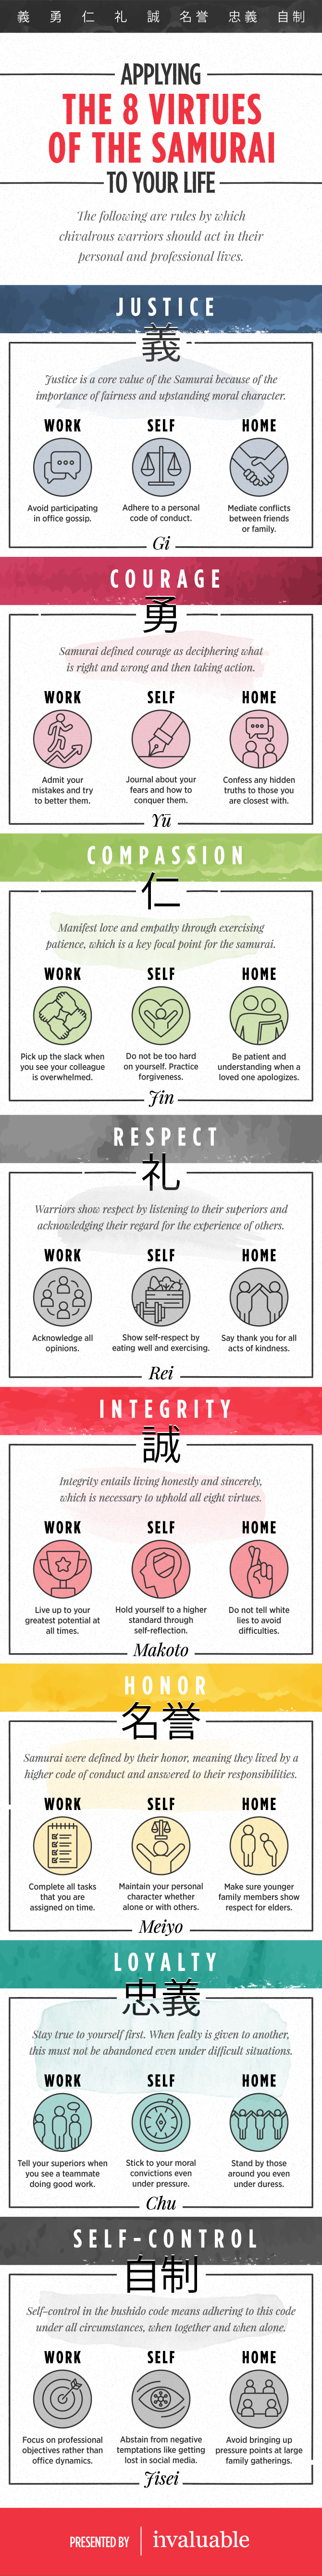 The Samurai Way of Life: the 8-Point Bushido Code - Infographic